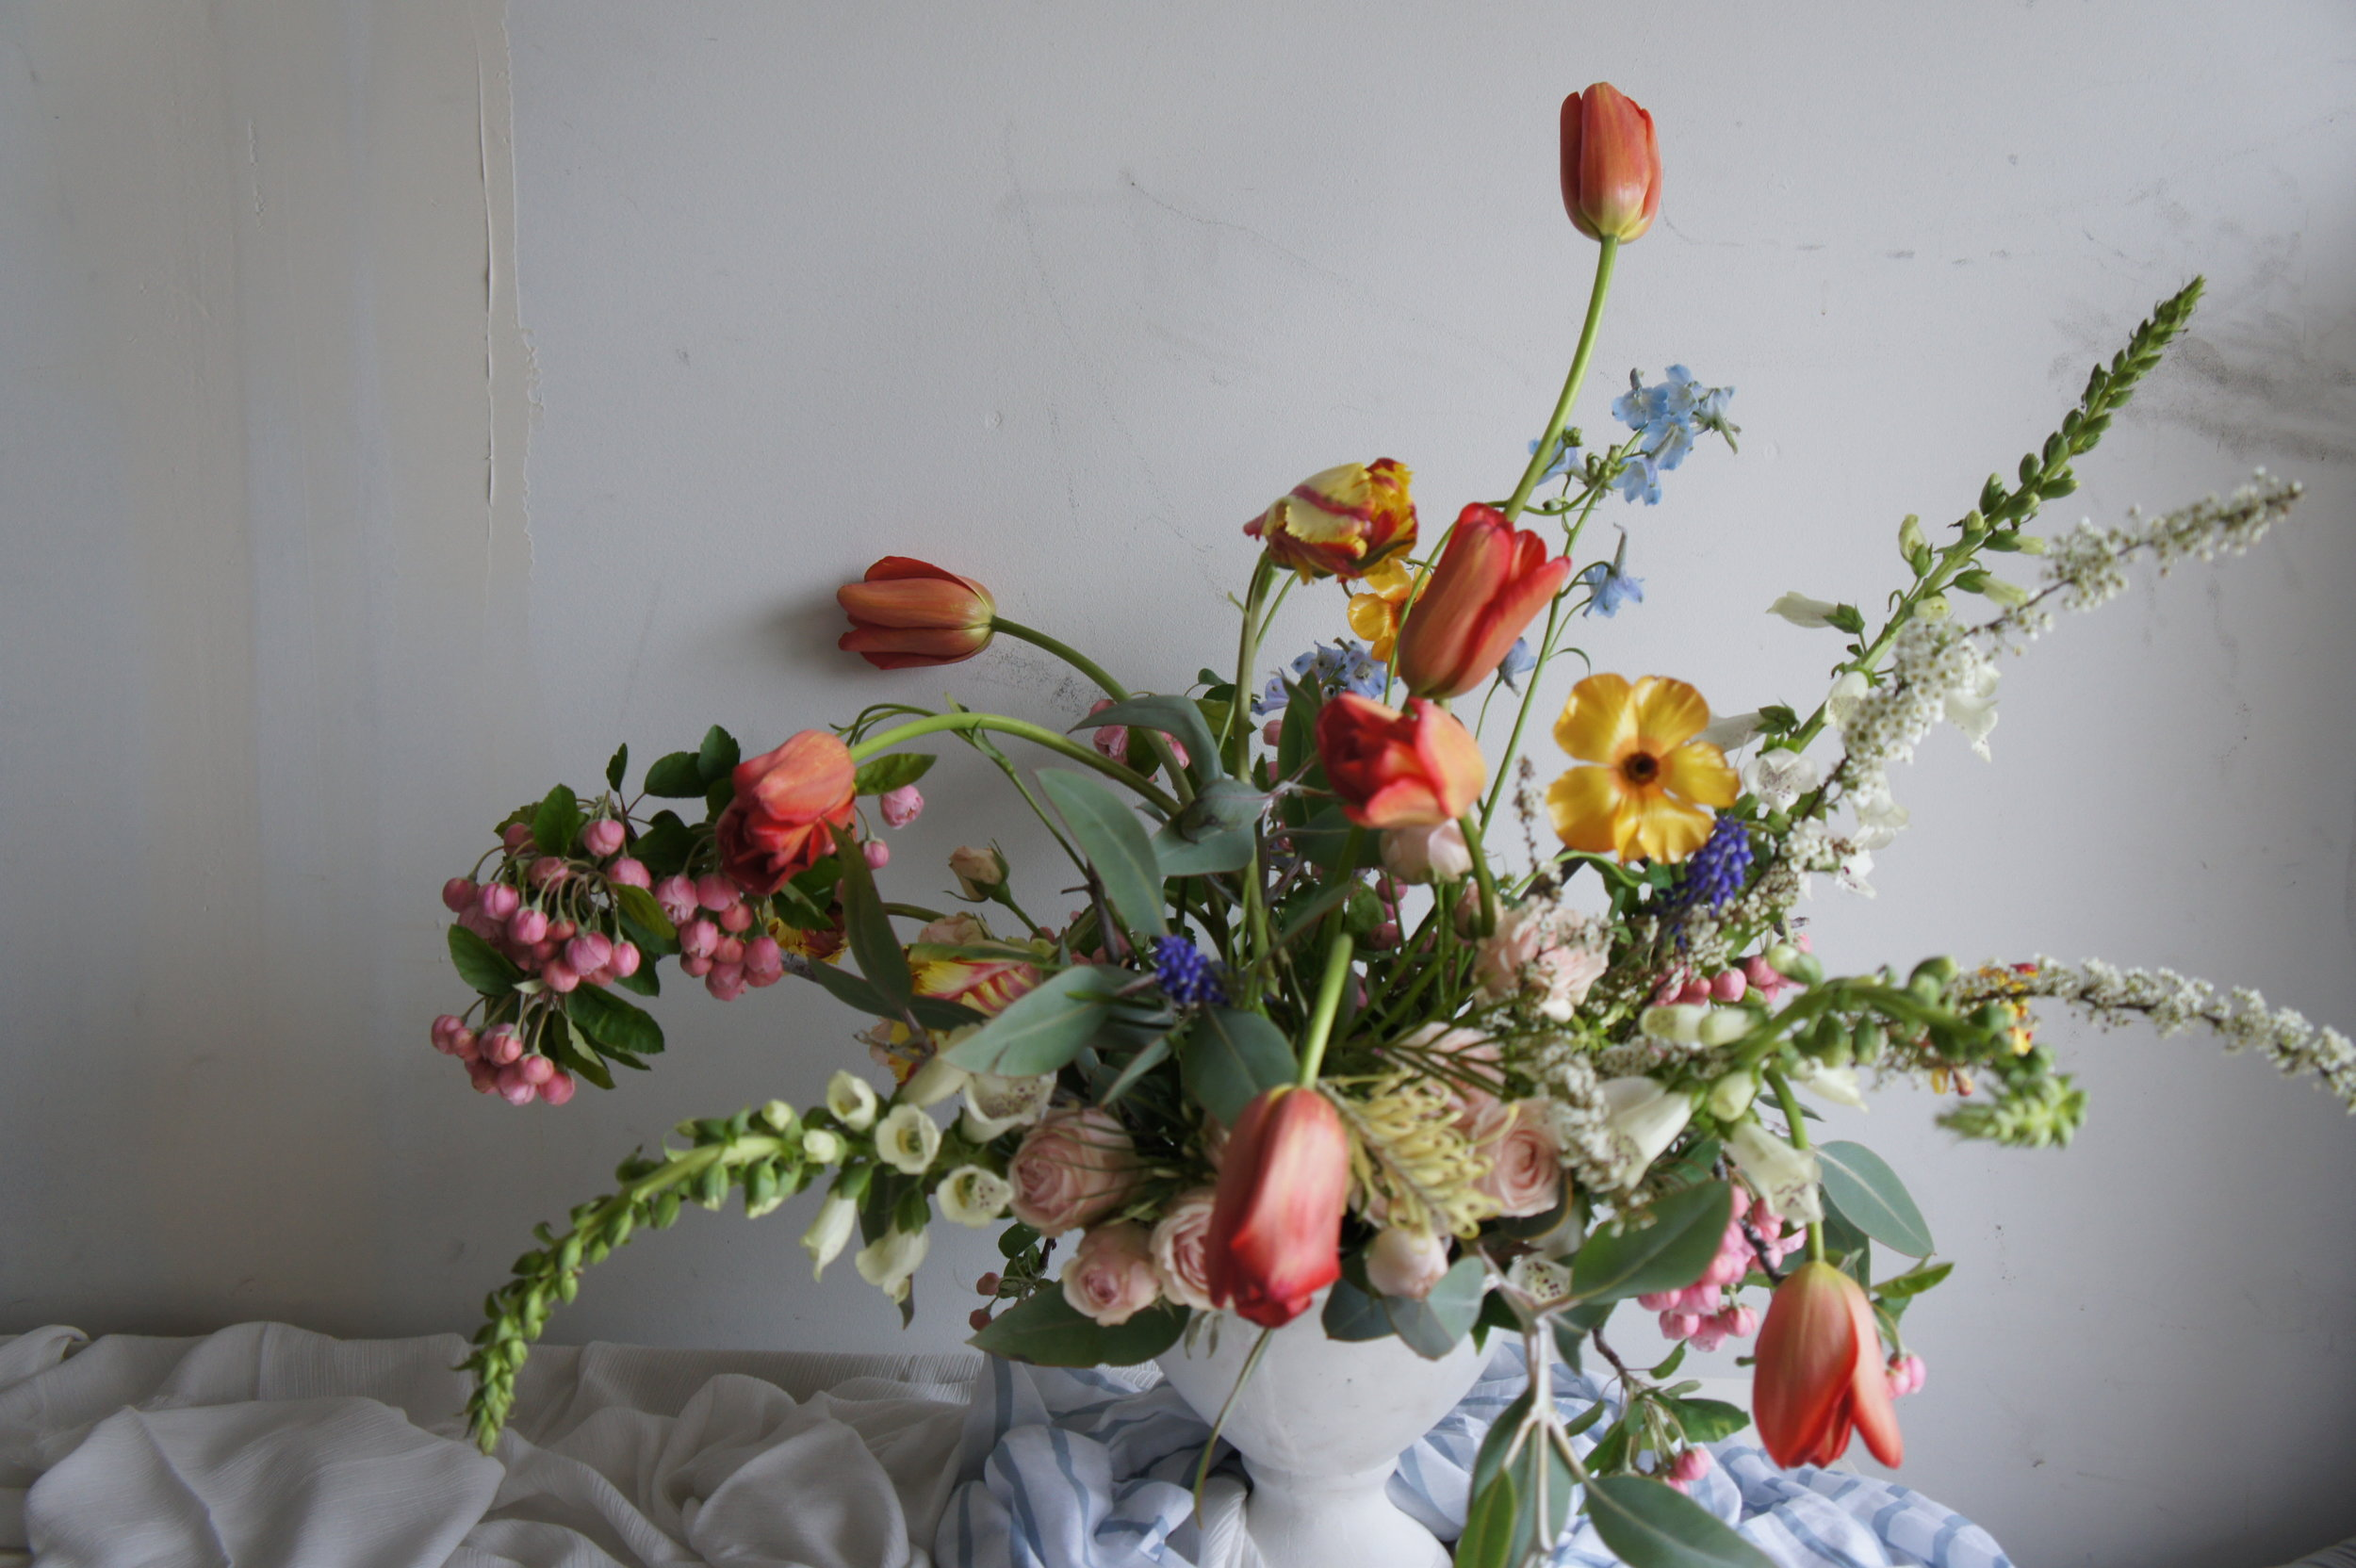 Then lastly changing it up taking out the Tulips and adding a mix of blue Delphinium…